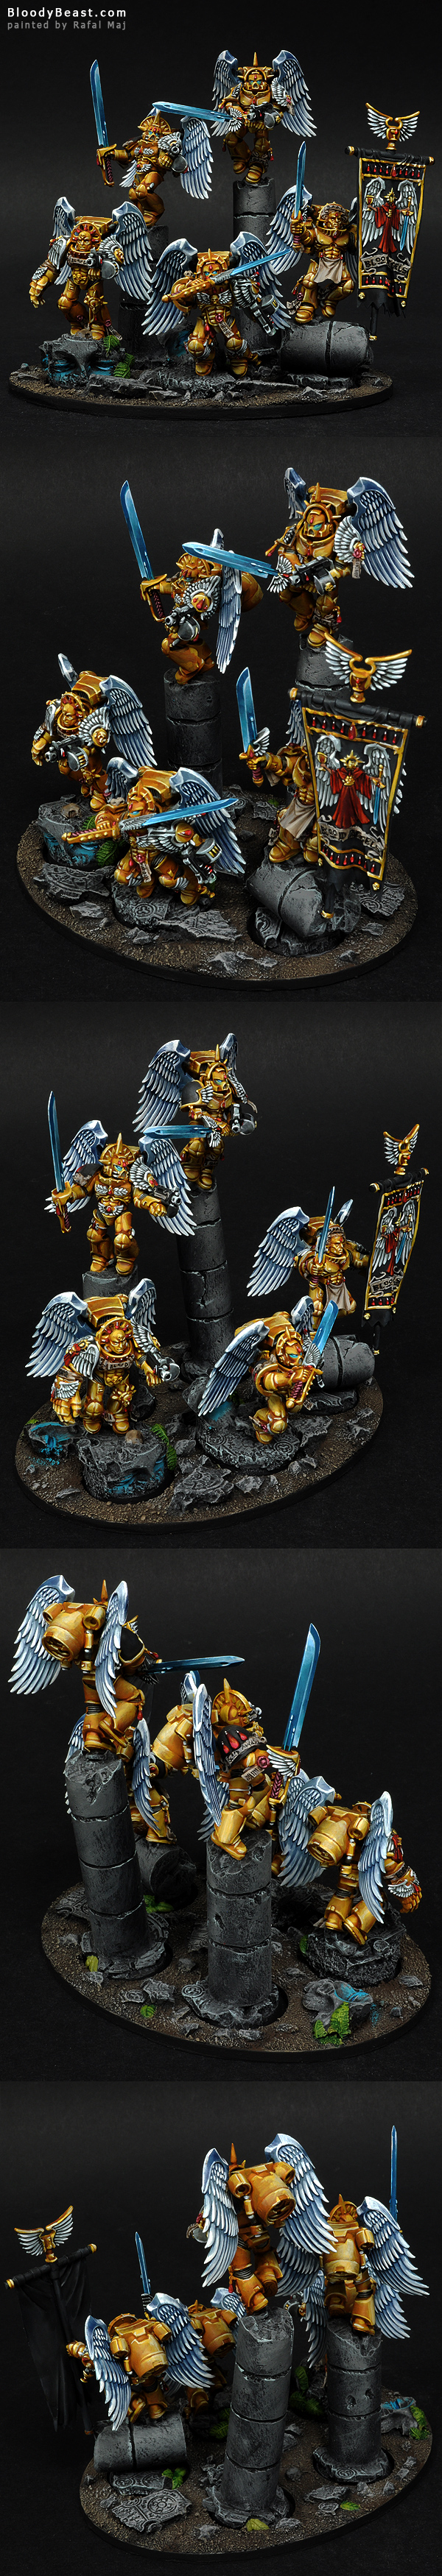 Blood Angels Sanguinary Guard painted by Rafal Maj (BloodyBeast.com)